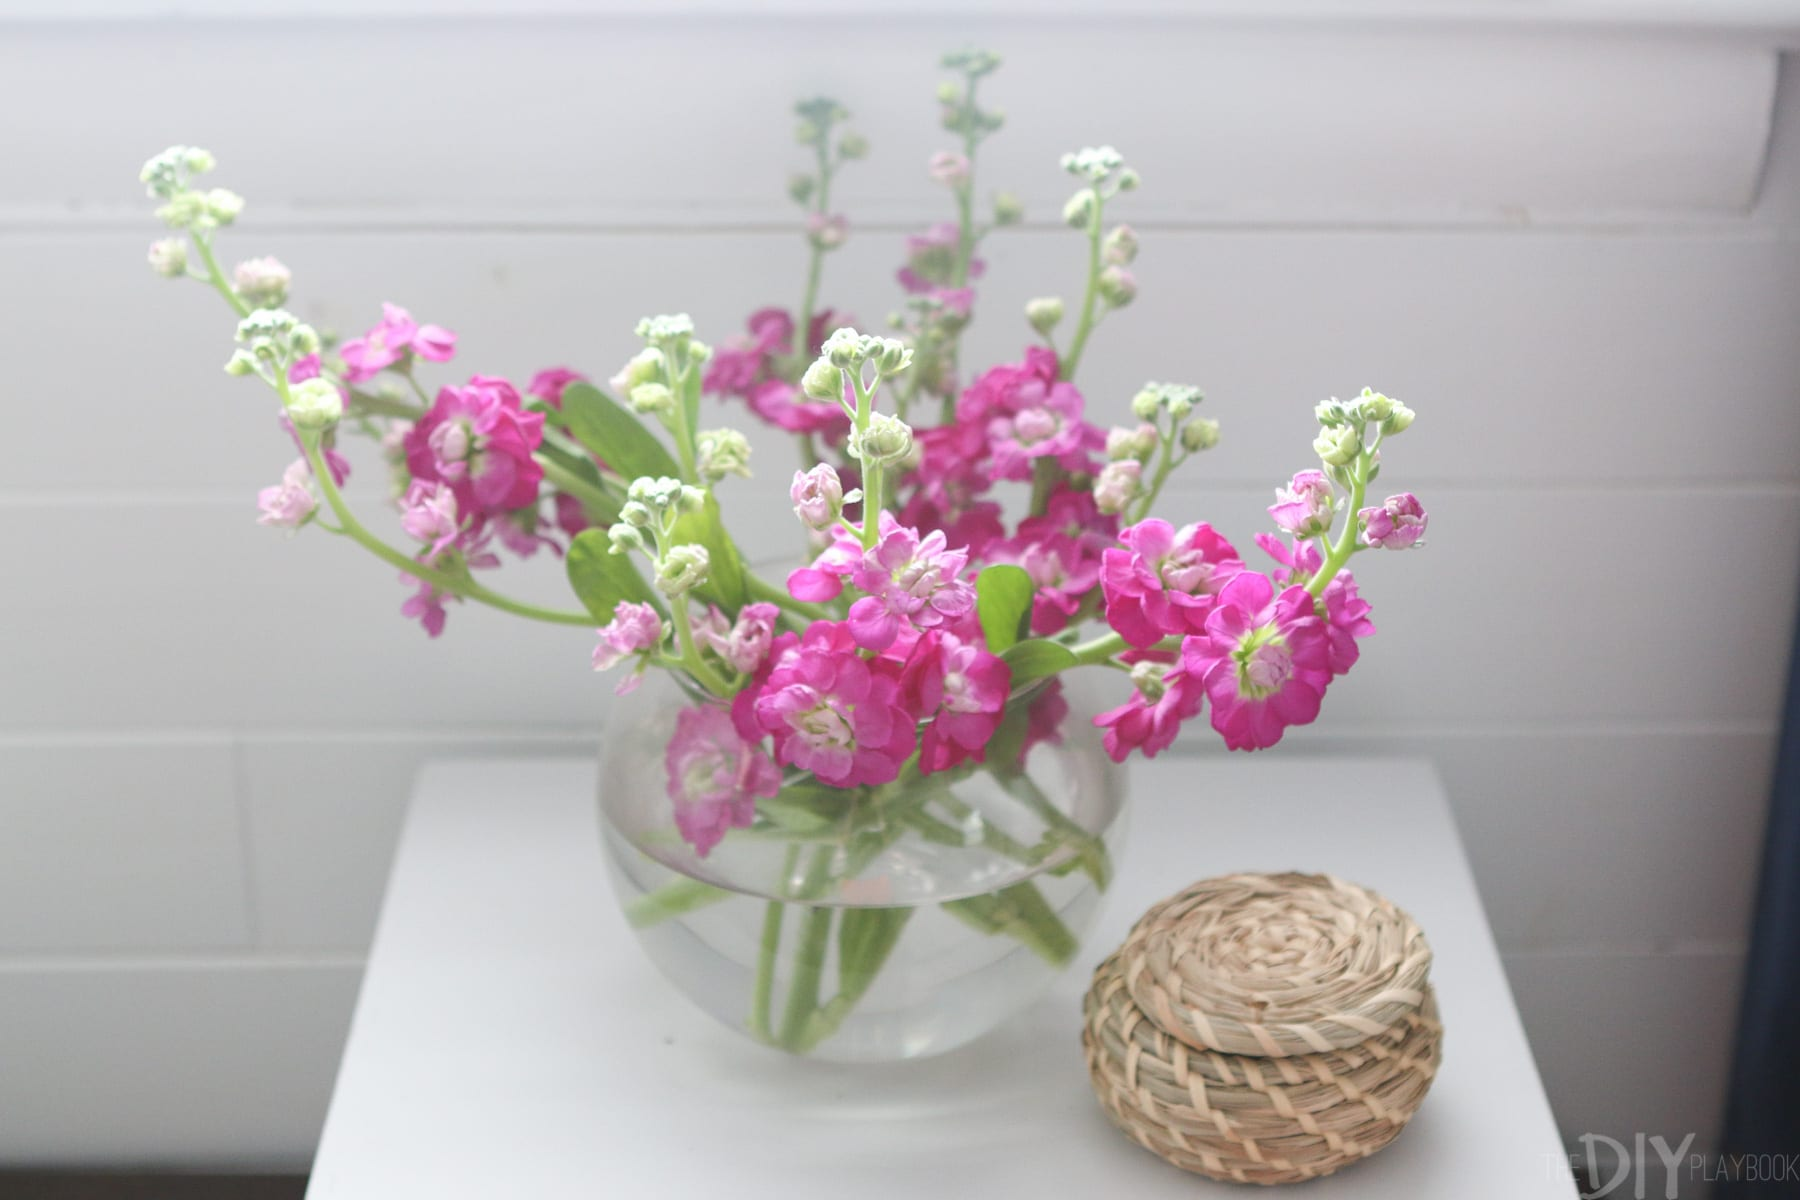 Summer Recap Video: Gorgeous florals are a beautiful part of summer!